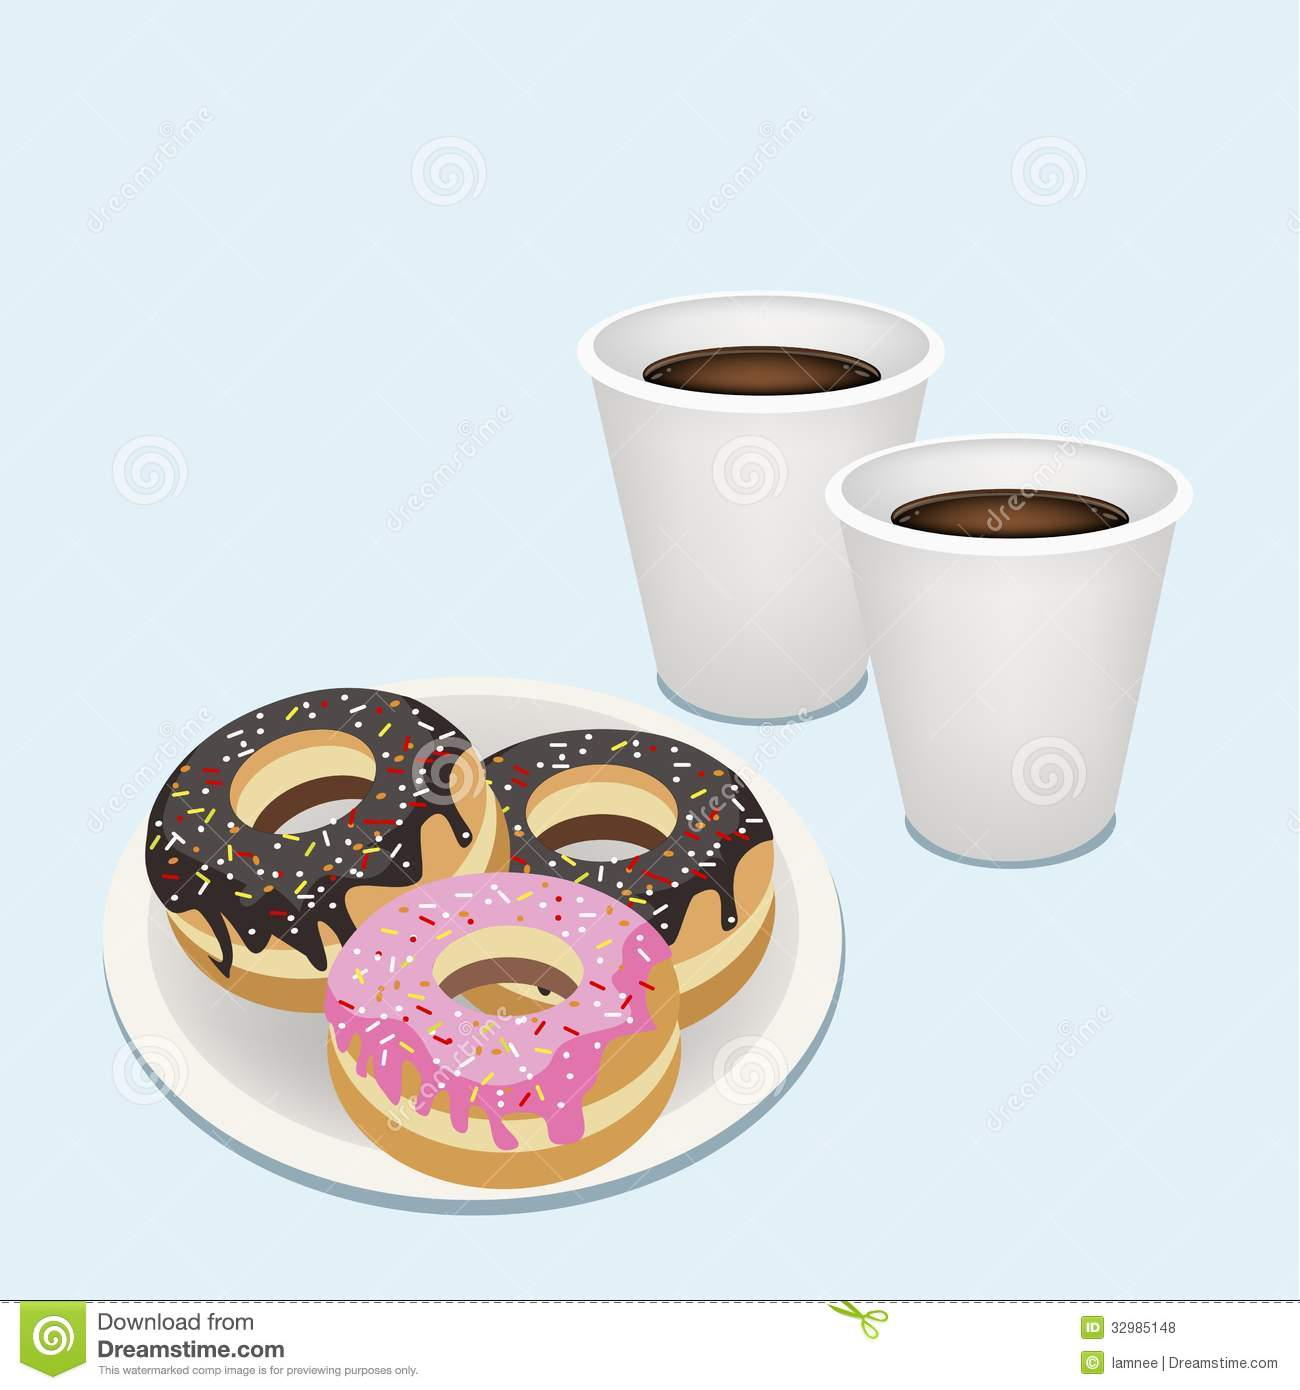 Dunkin Donuts Clip Art. A Hot Coffee in Disposable Cup .